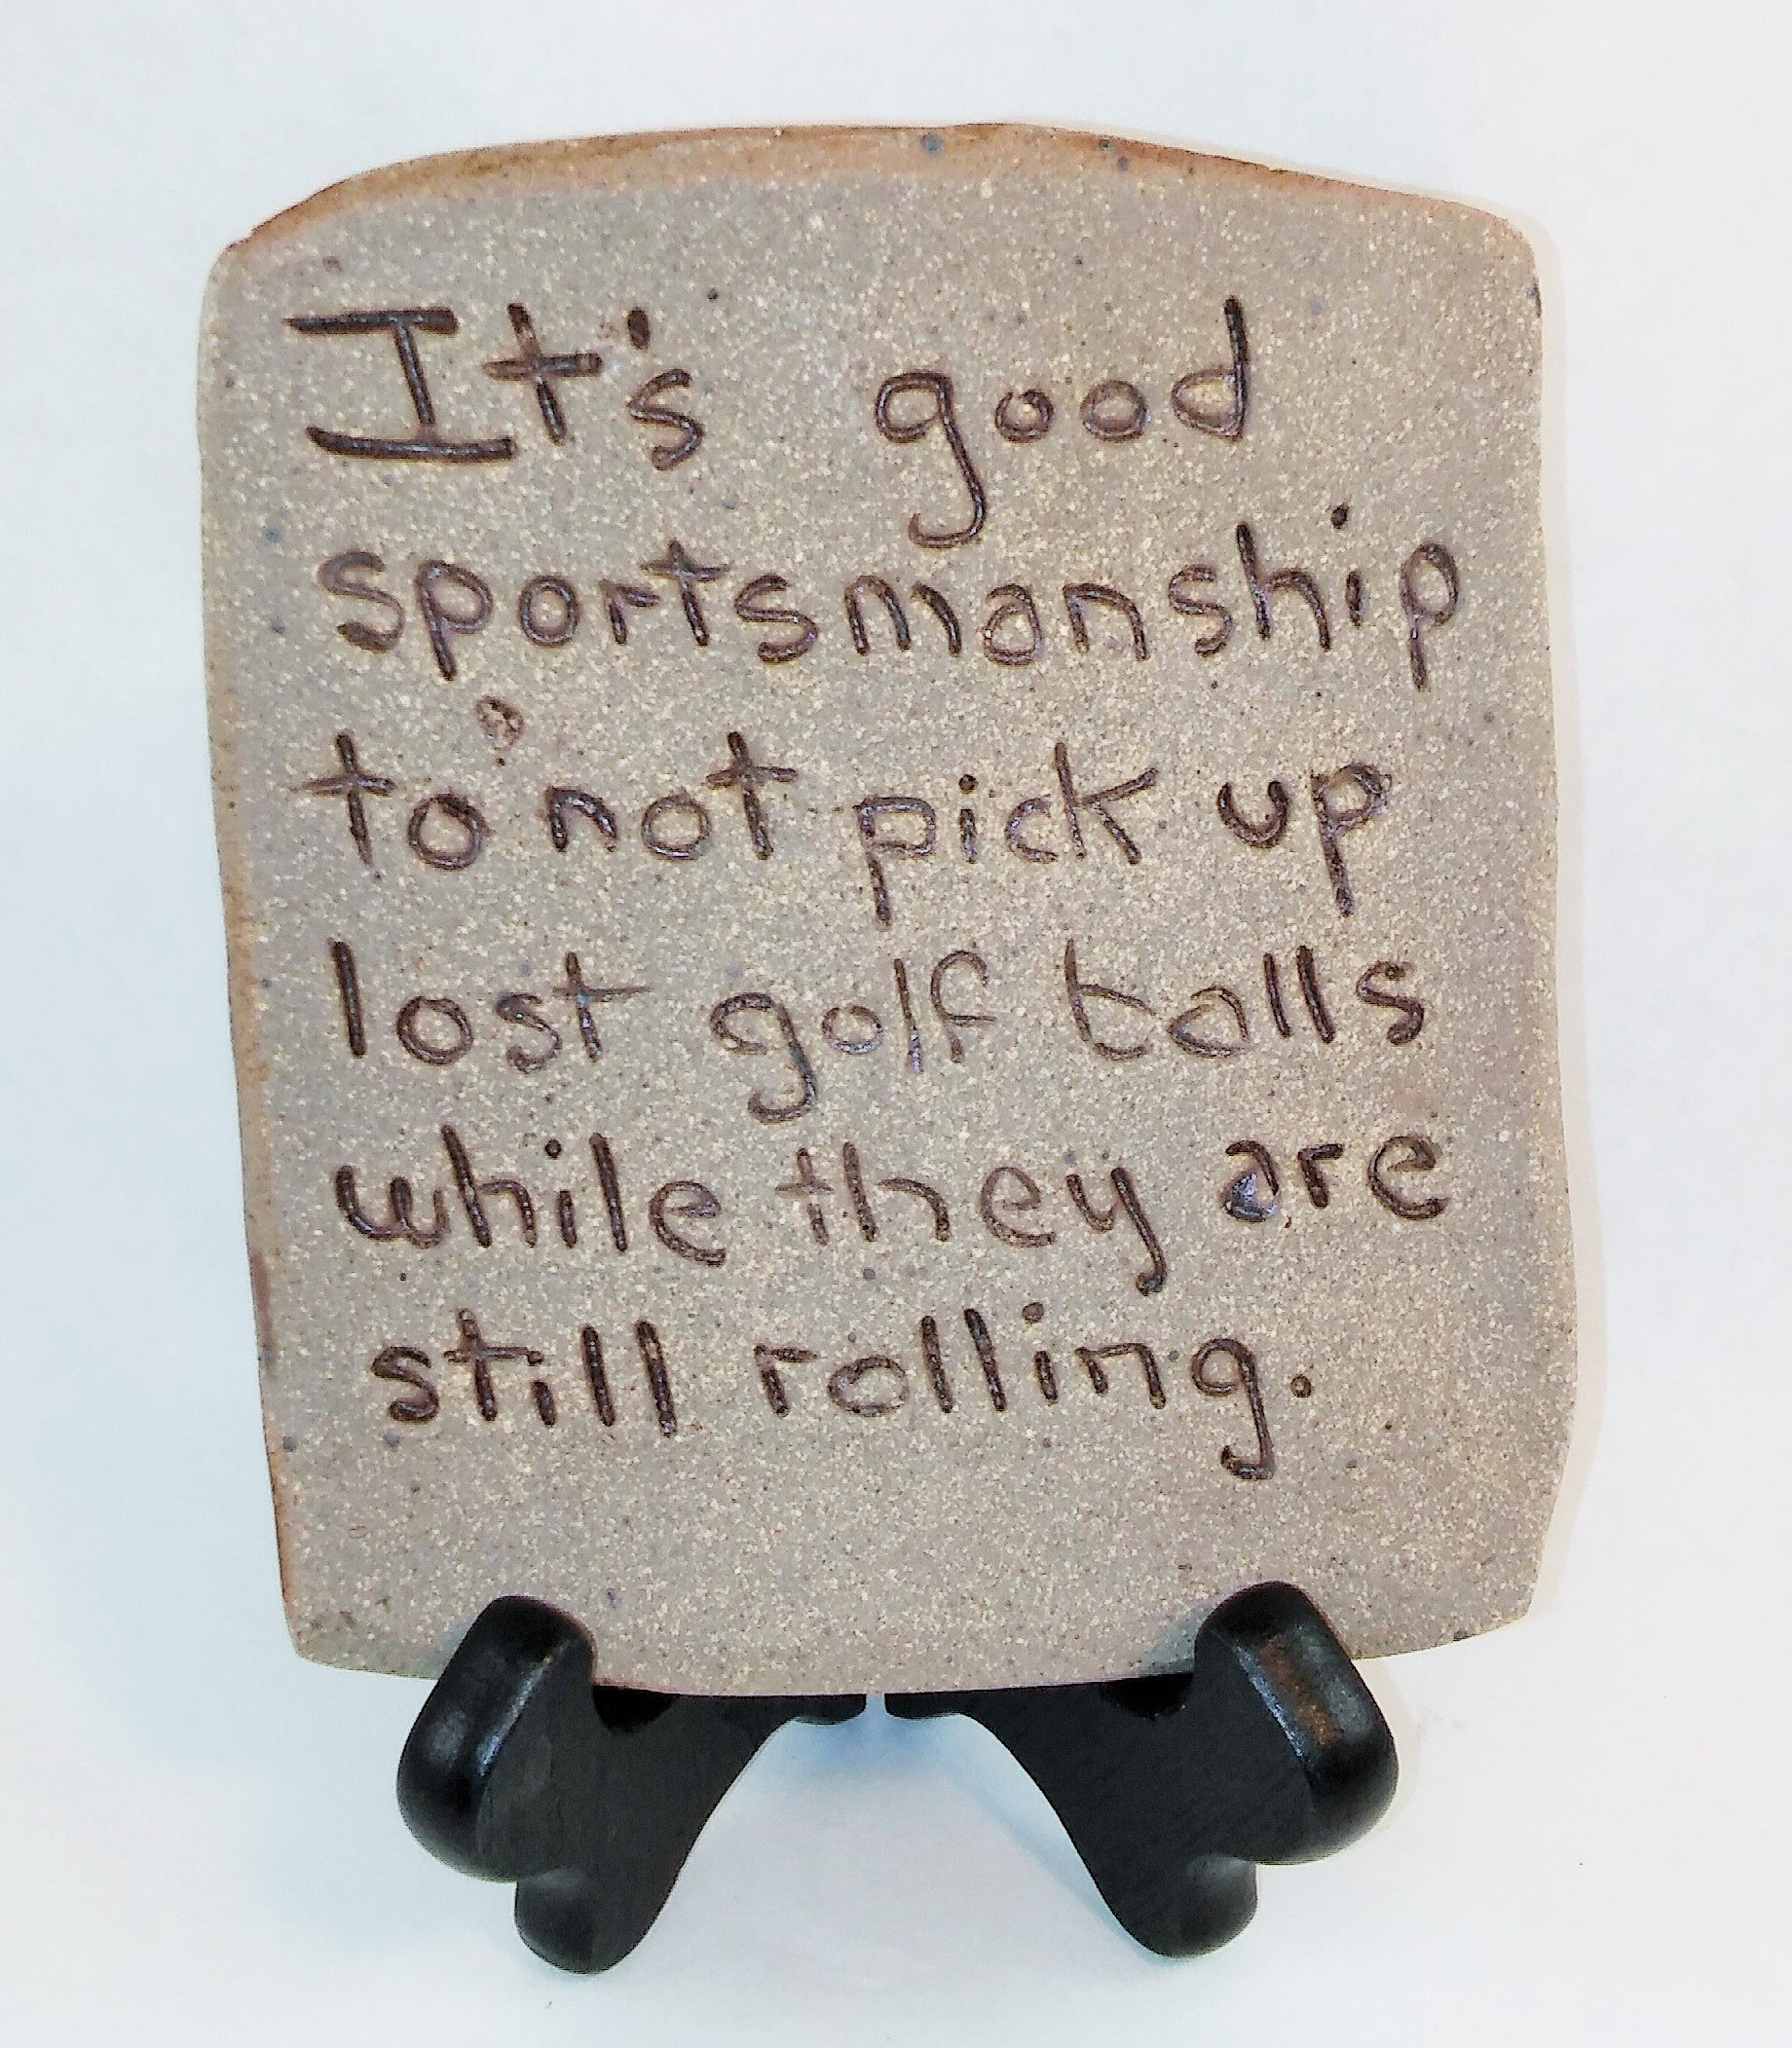 "Aunt Chris' Pottery - Desk Top - Rustic Clay Sign - With Unique Biblical Words Or Quotes ""It's good sportsmanship to not pick up lost golf balls while they are still rolling."" - Sits On Wood Easel"